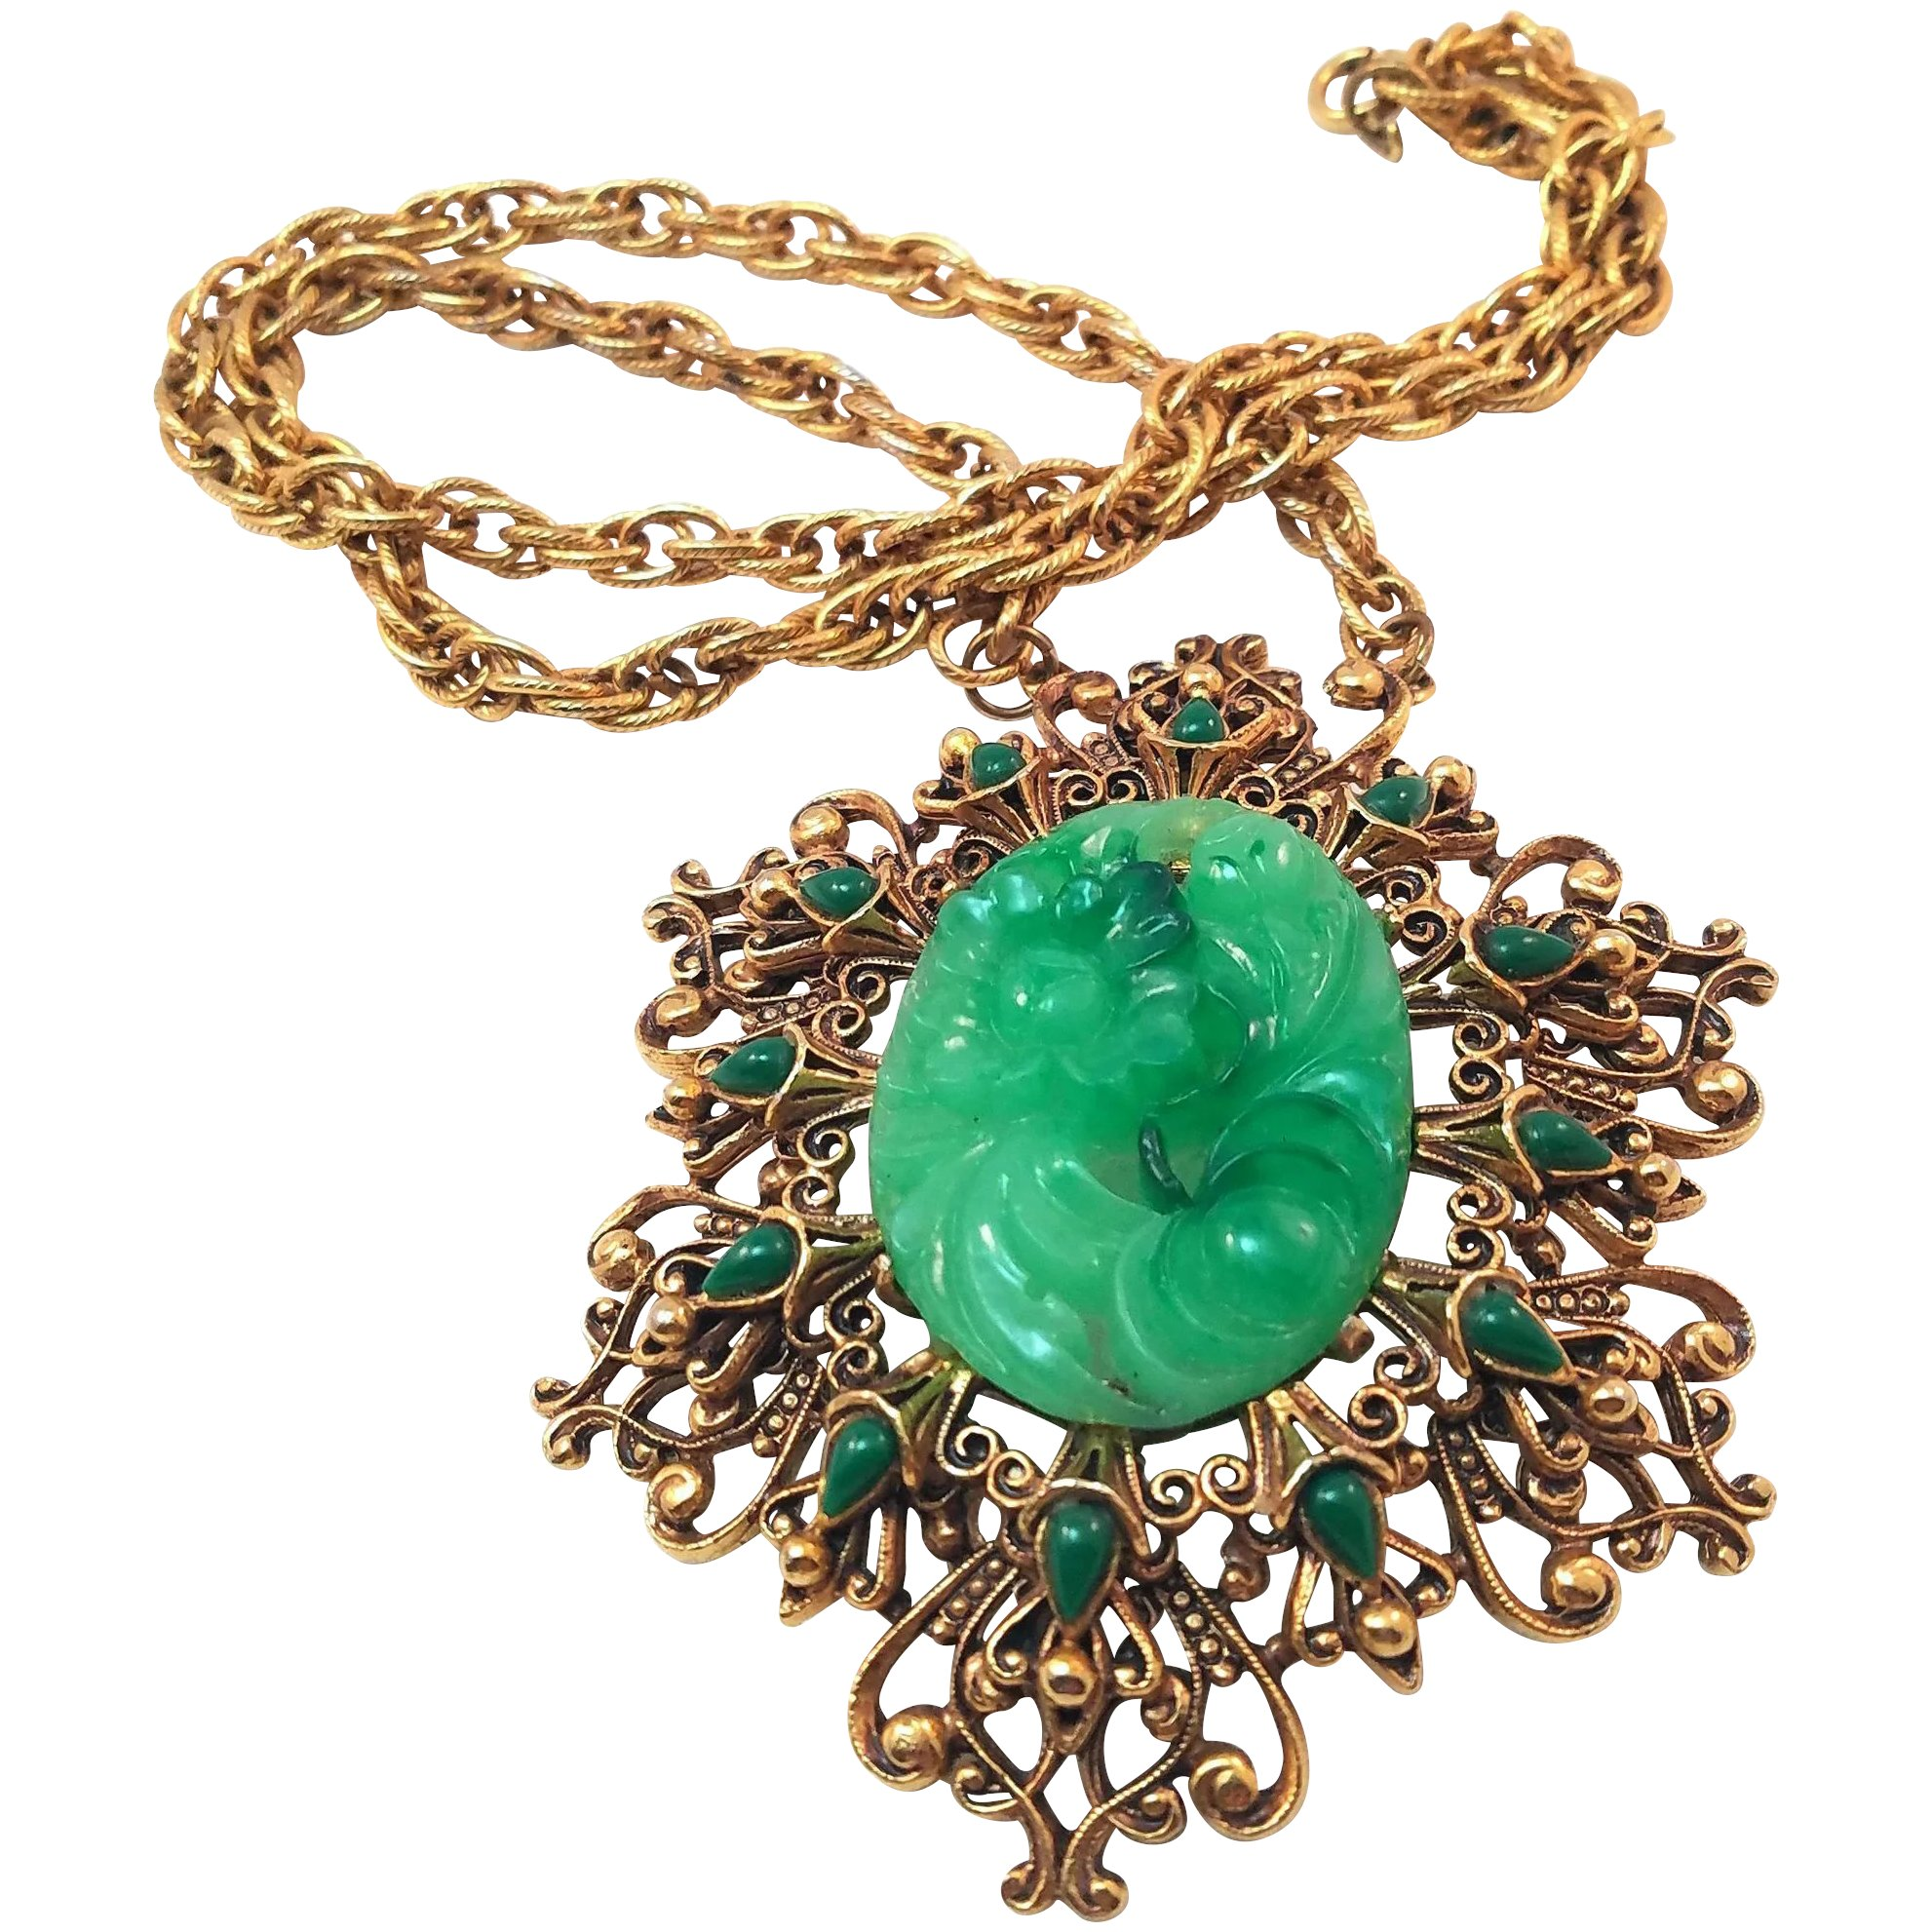 Florenza vintage faux carved jade pendant necklace in filigree florenza vintage faux carved jade pendant necklace in filigree setting click to expand aloadofball Gallery